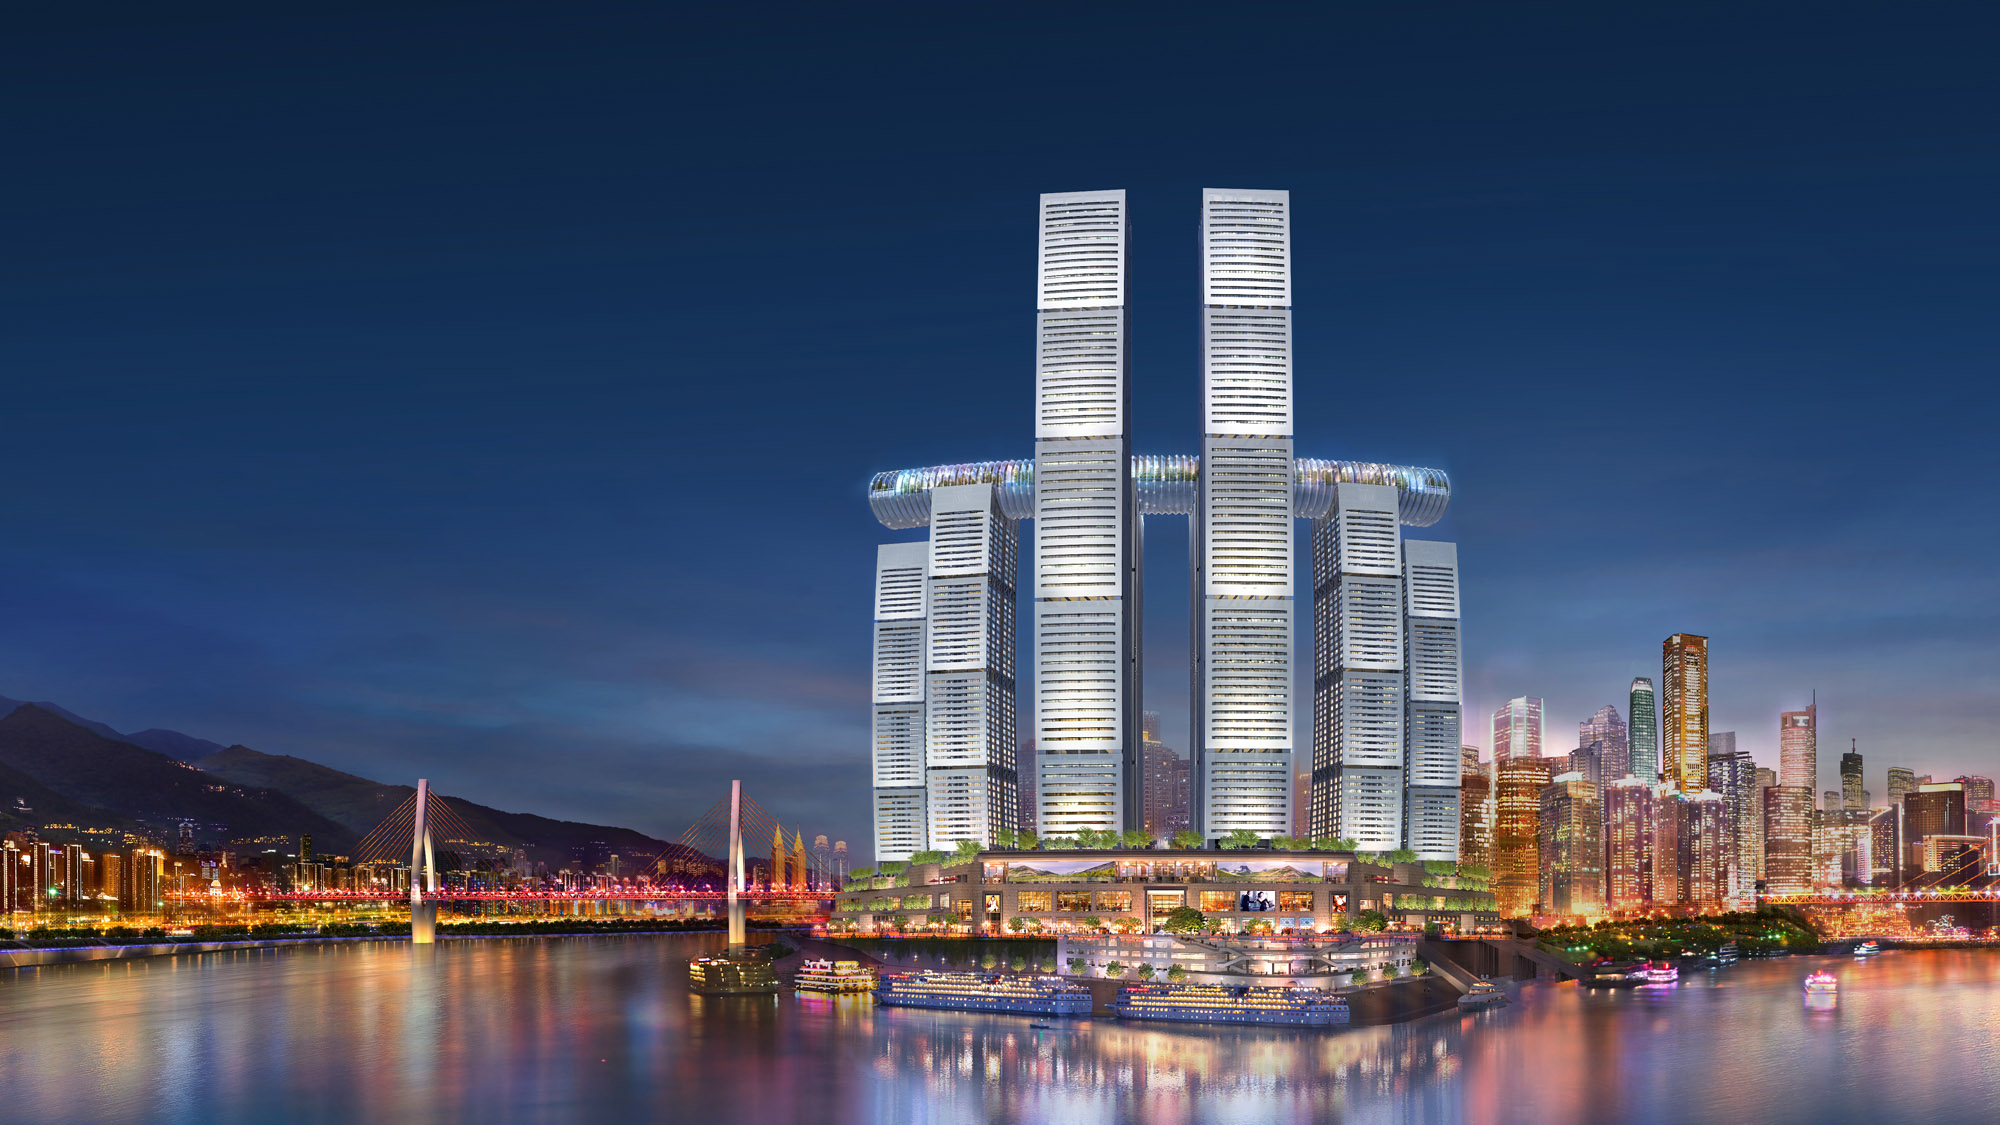 Raffles City Chongqing 2 2000x1125c Safdie Architects  CapitaLand China Investment Co Ltd1